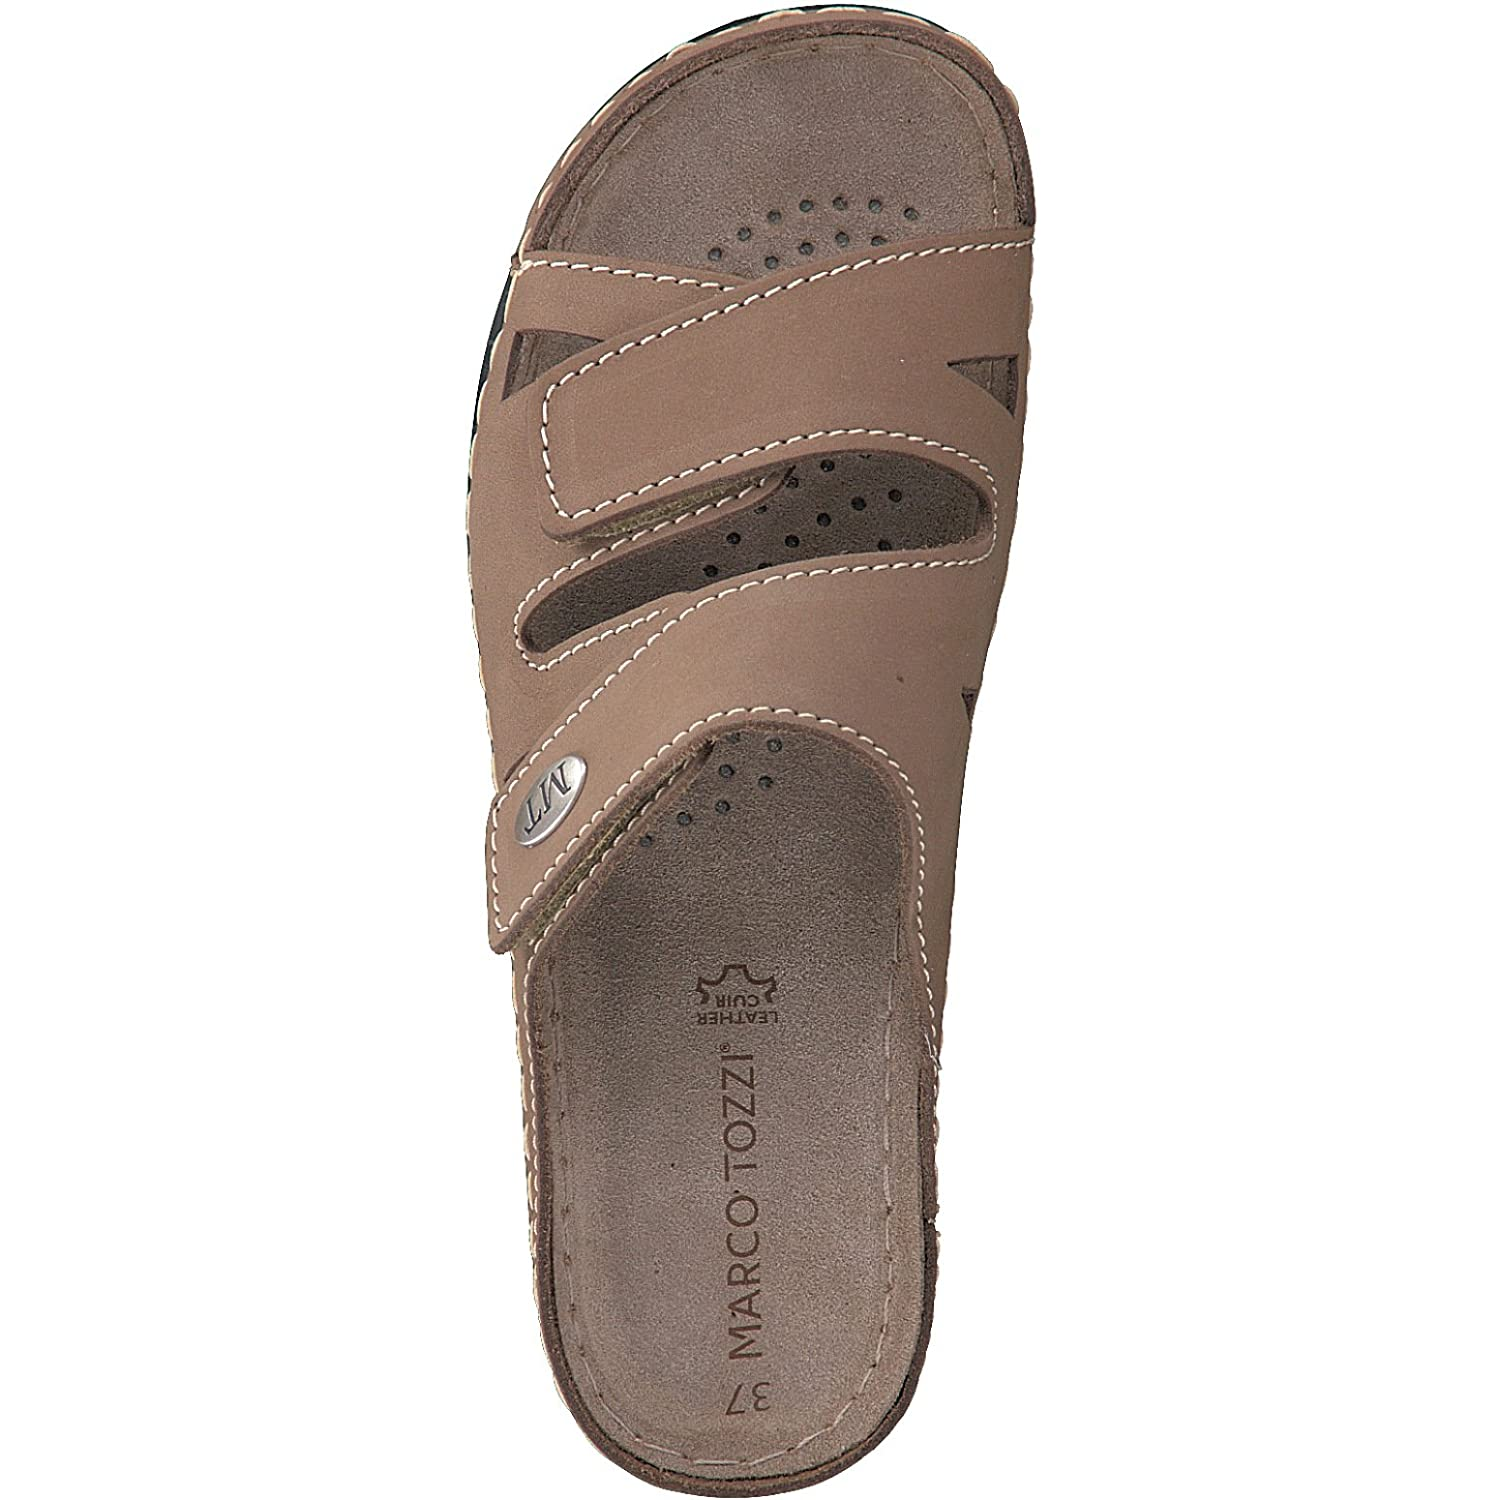 New Womens Marco Tozzi Brown Tan 27512 Leather Sandals Slides